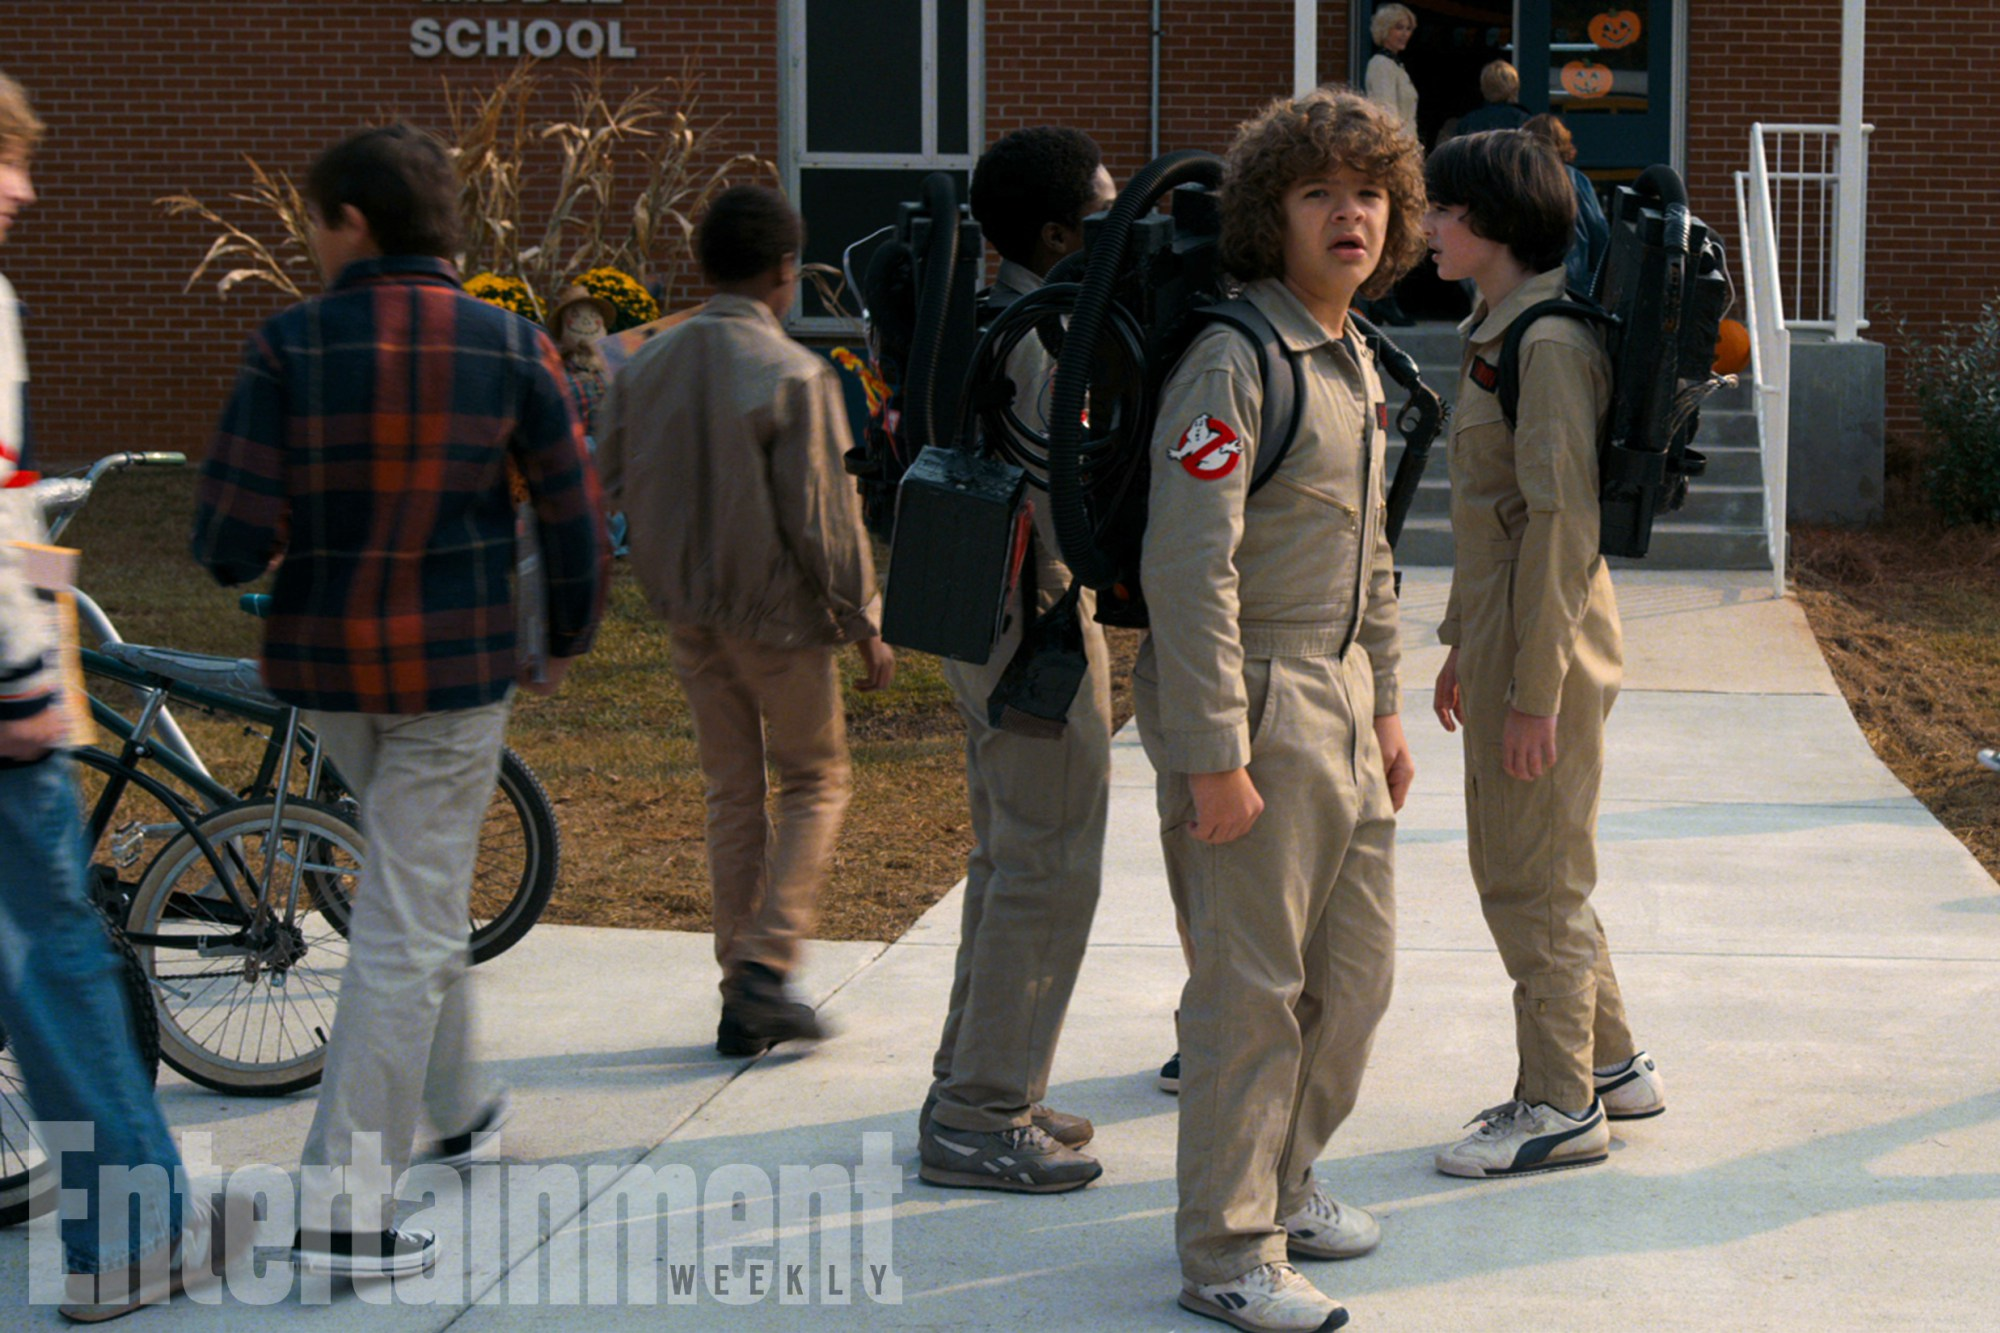 Stranger Things Season 2 Gets First Image, Teaser Coming This Weekend